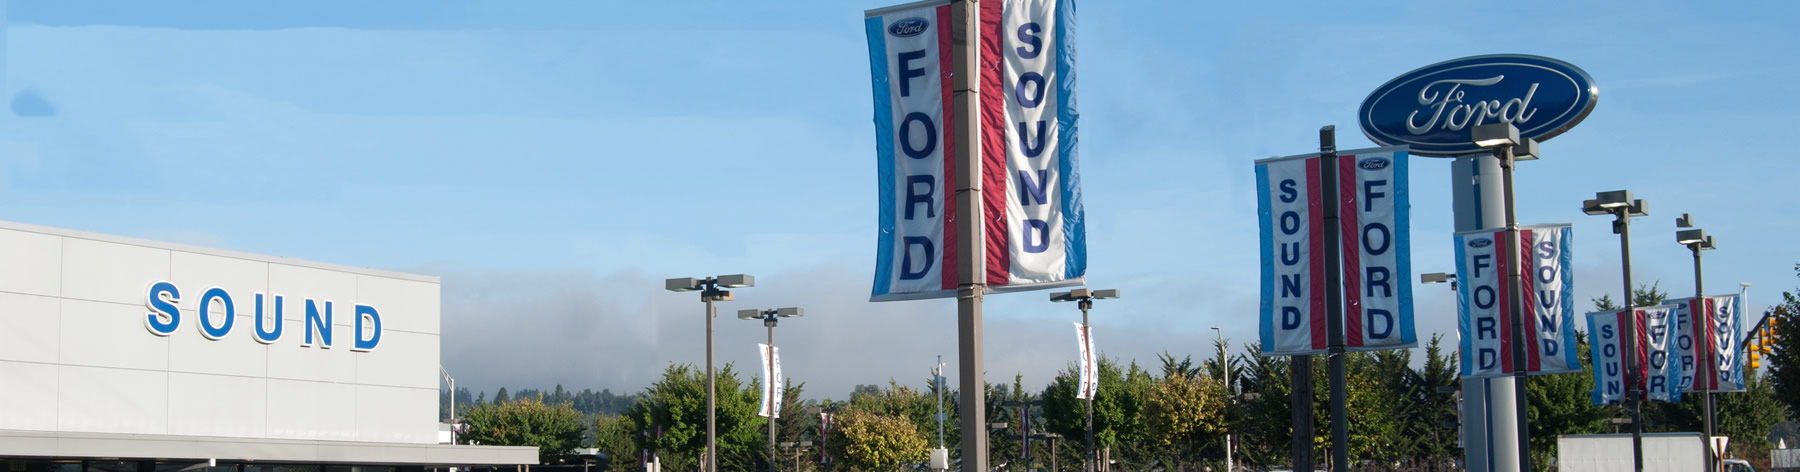 New & Used Ford Turcks and Cars, Renton and surrounding area